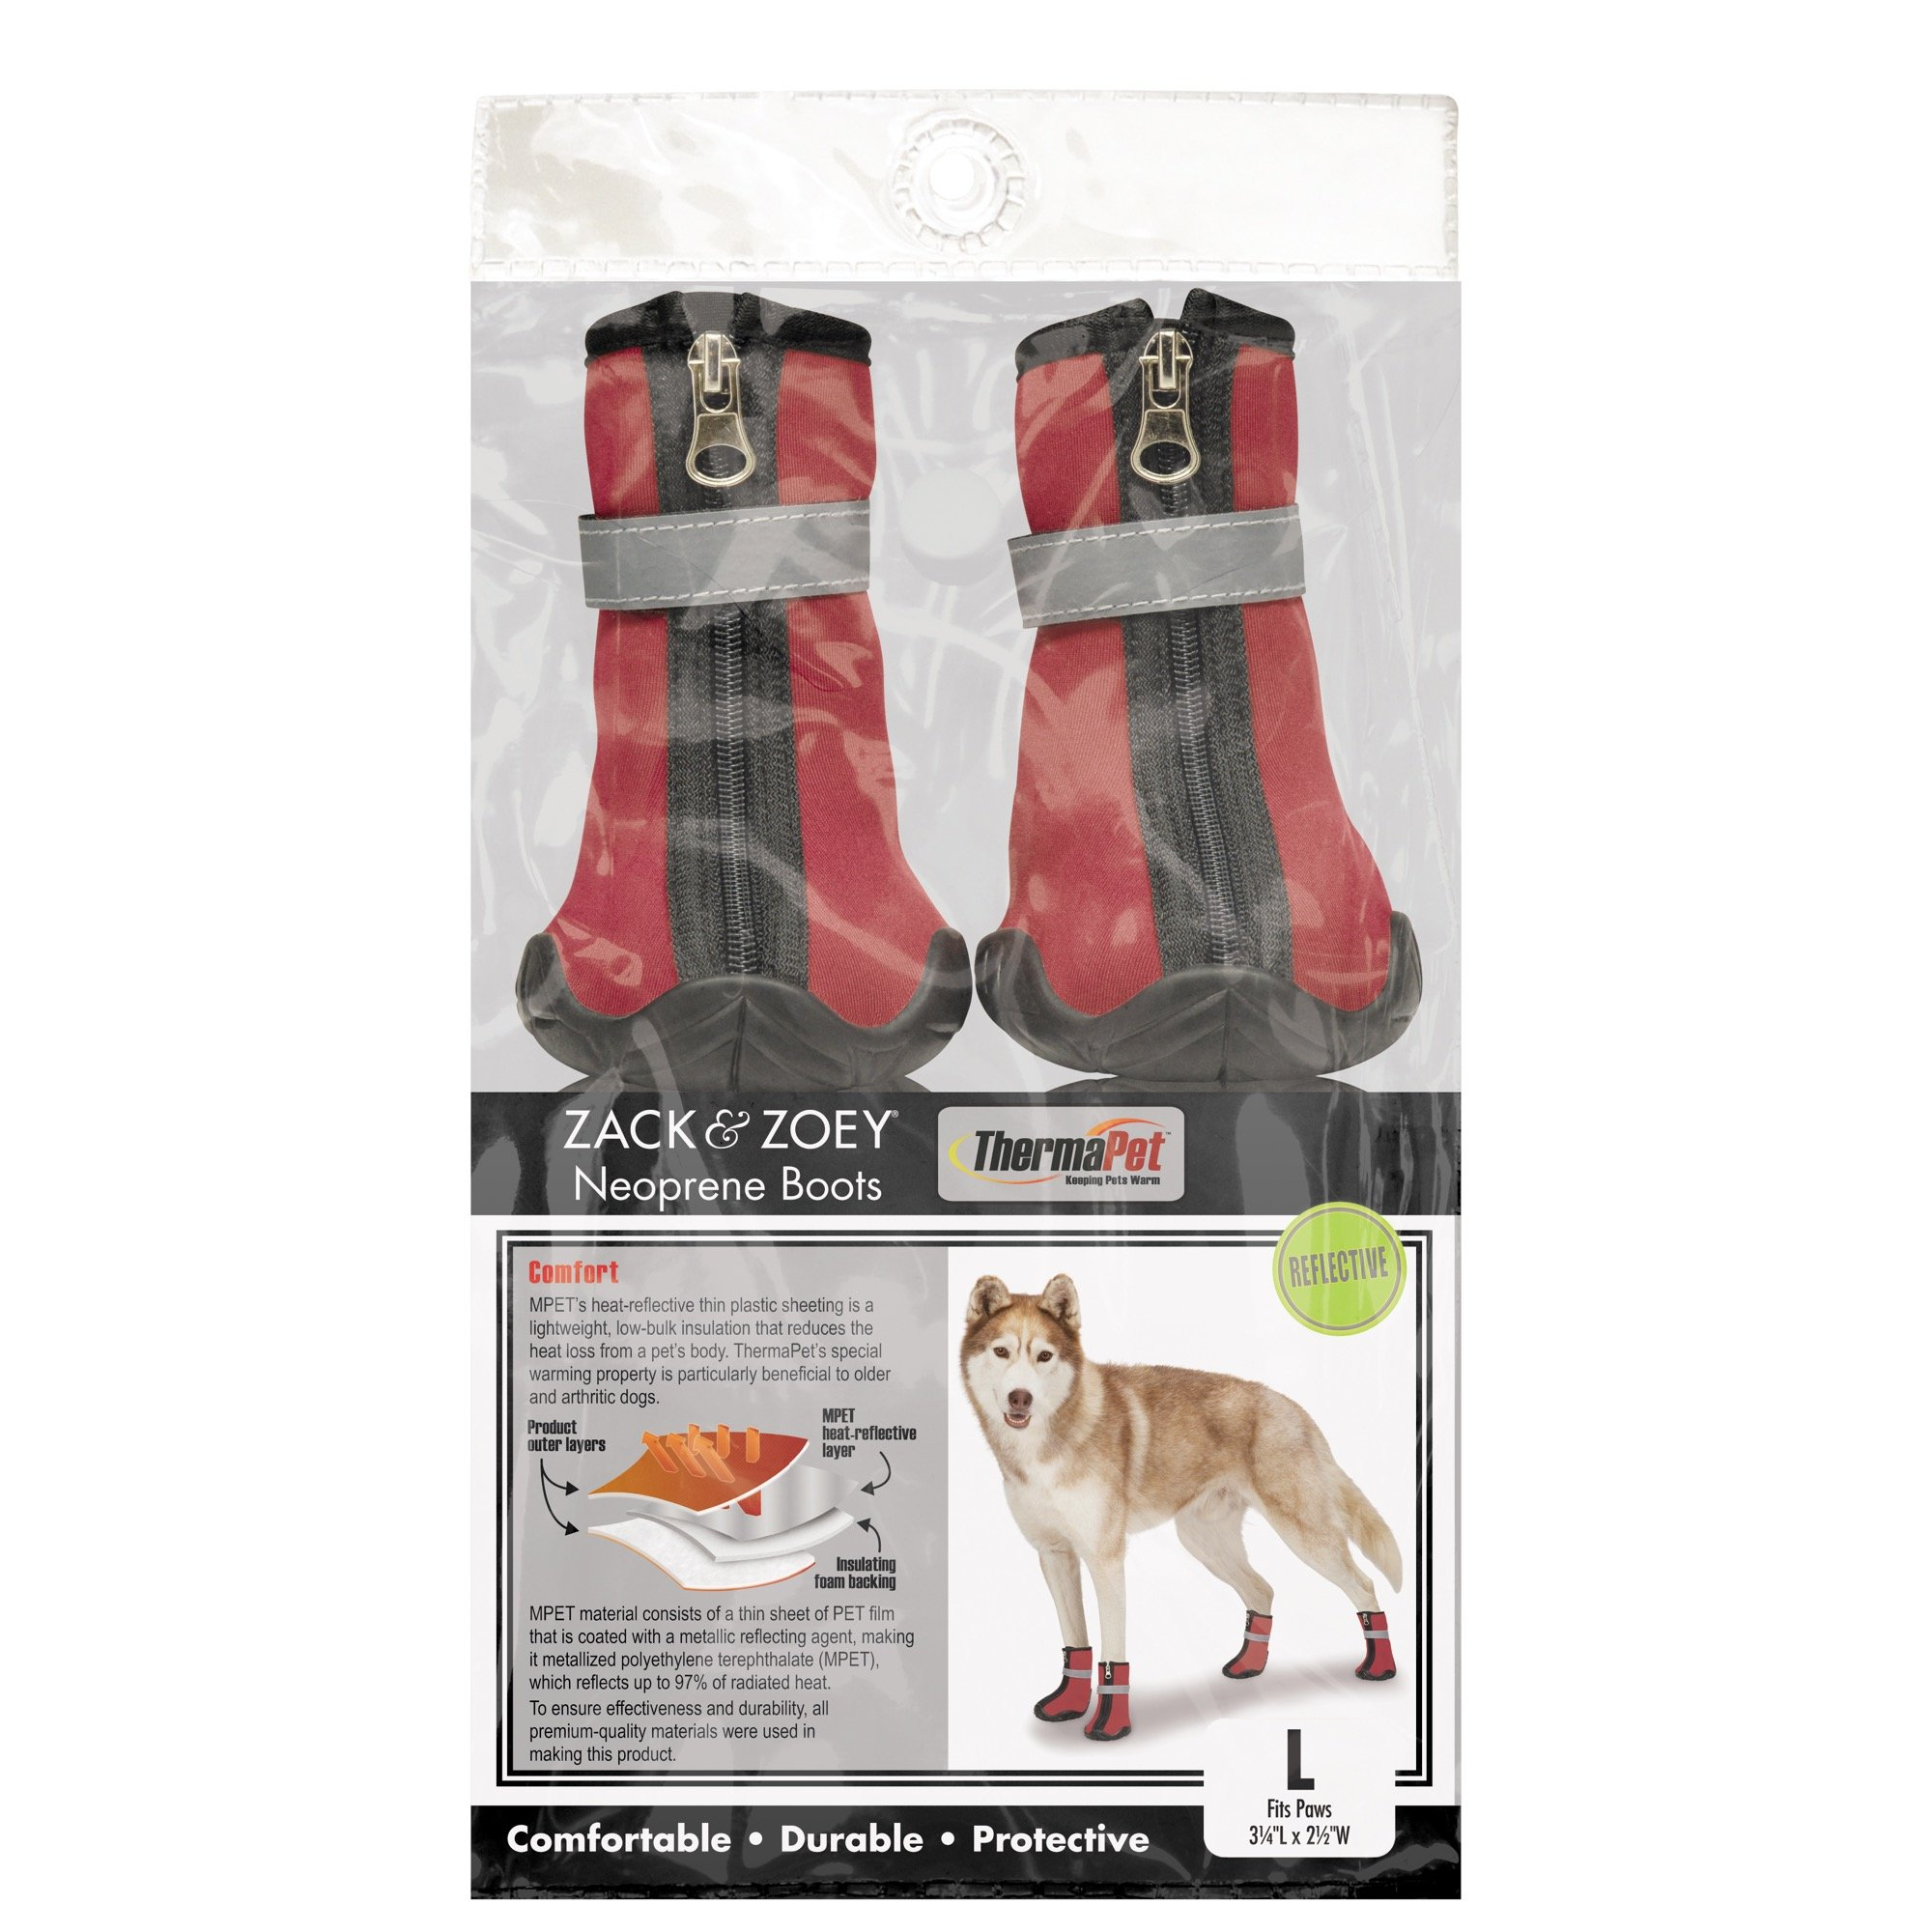 Zack & Zoey ThermaPet Neoprene Boots, Red, X-Small by Zack & Zoey